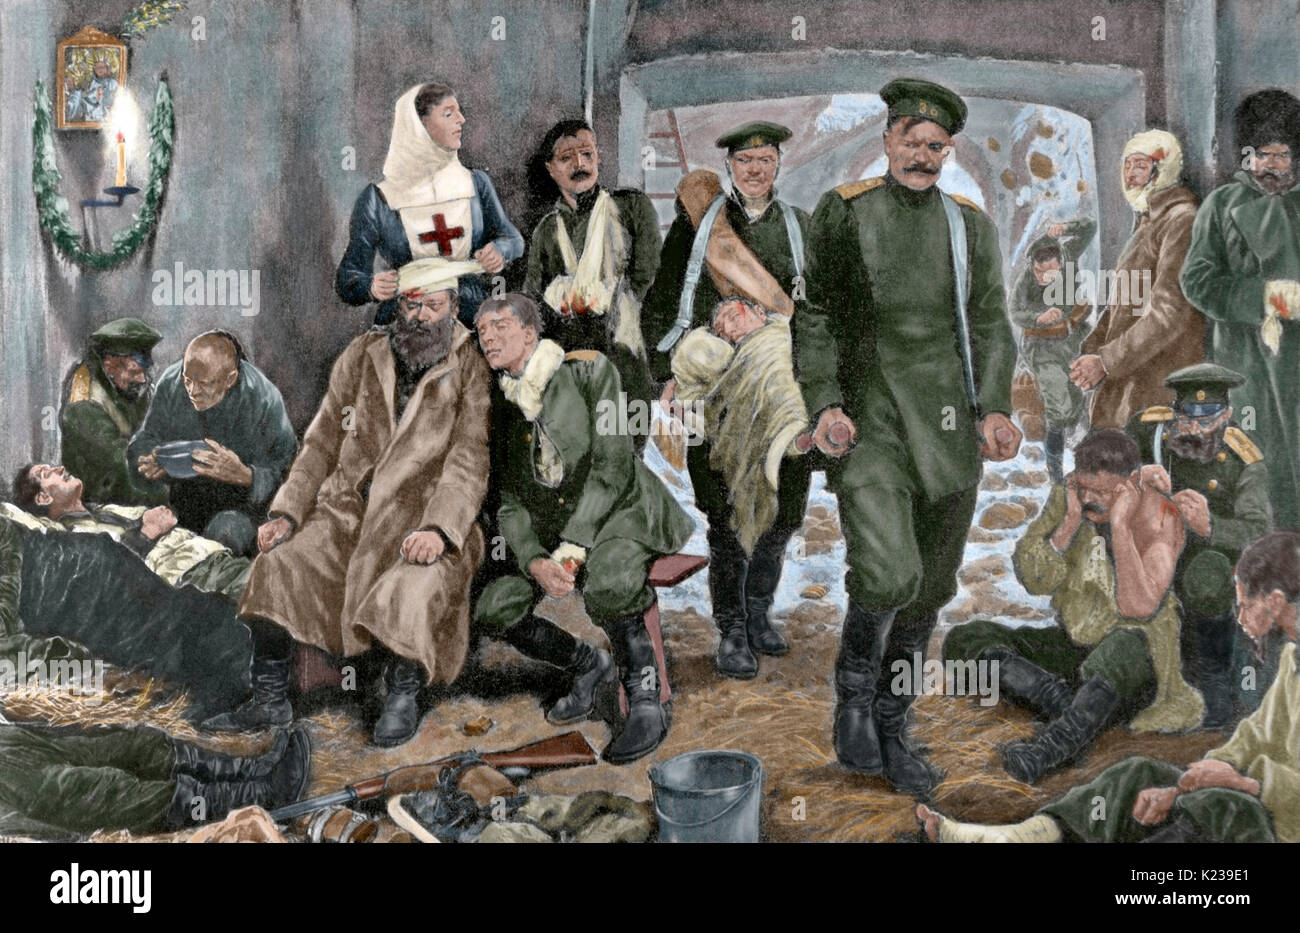 Russo-Japanese War (1904-1905). Campaign hospital of the Russian troops in Manchuria. Arrival of a wounded. Engraving by R. Caton Woodville. 'La Ilustración Artistica', 20th century. Colored. - Stock Image